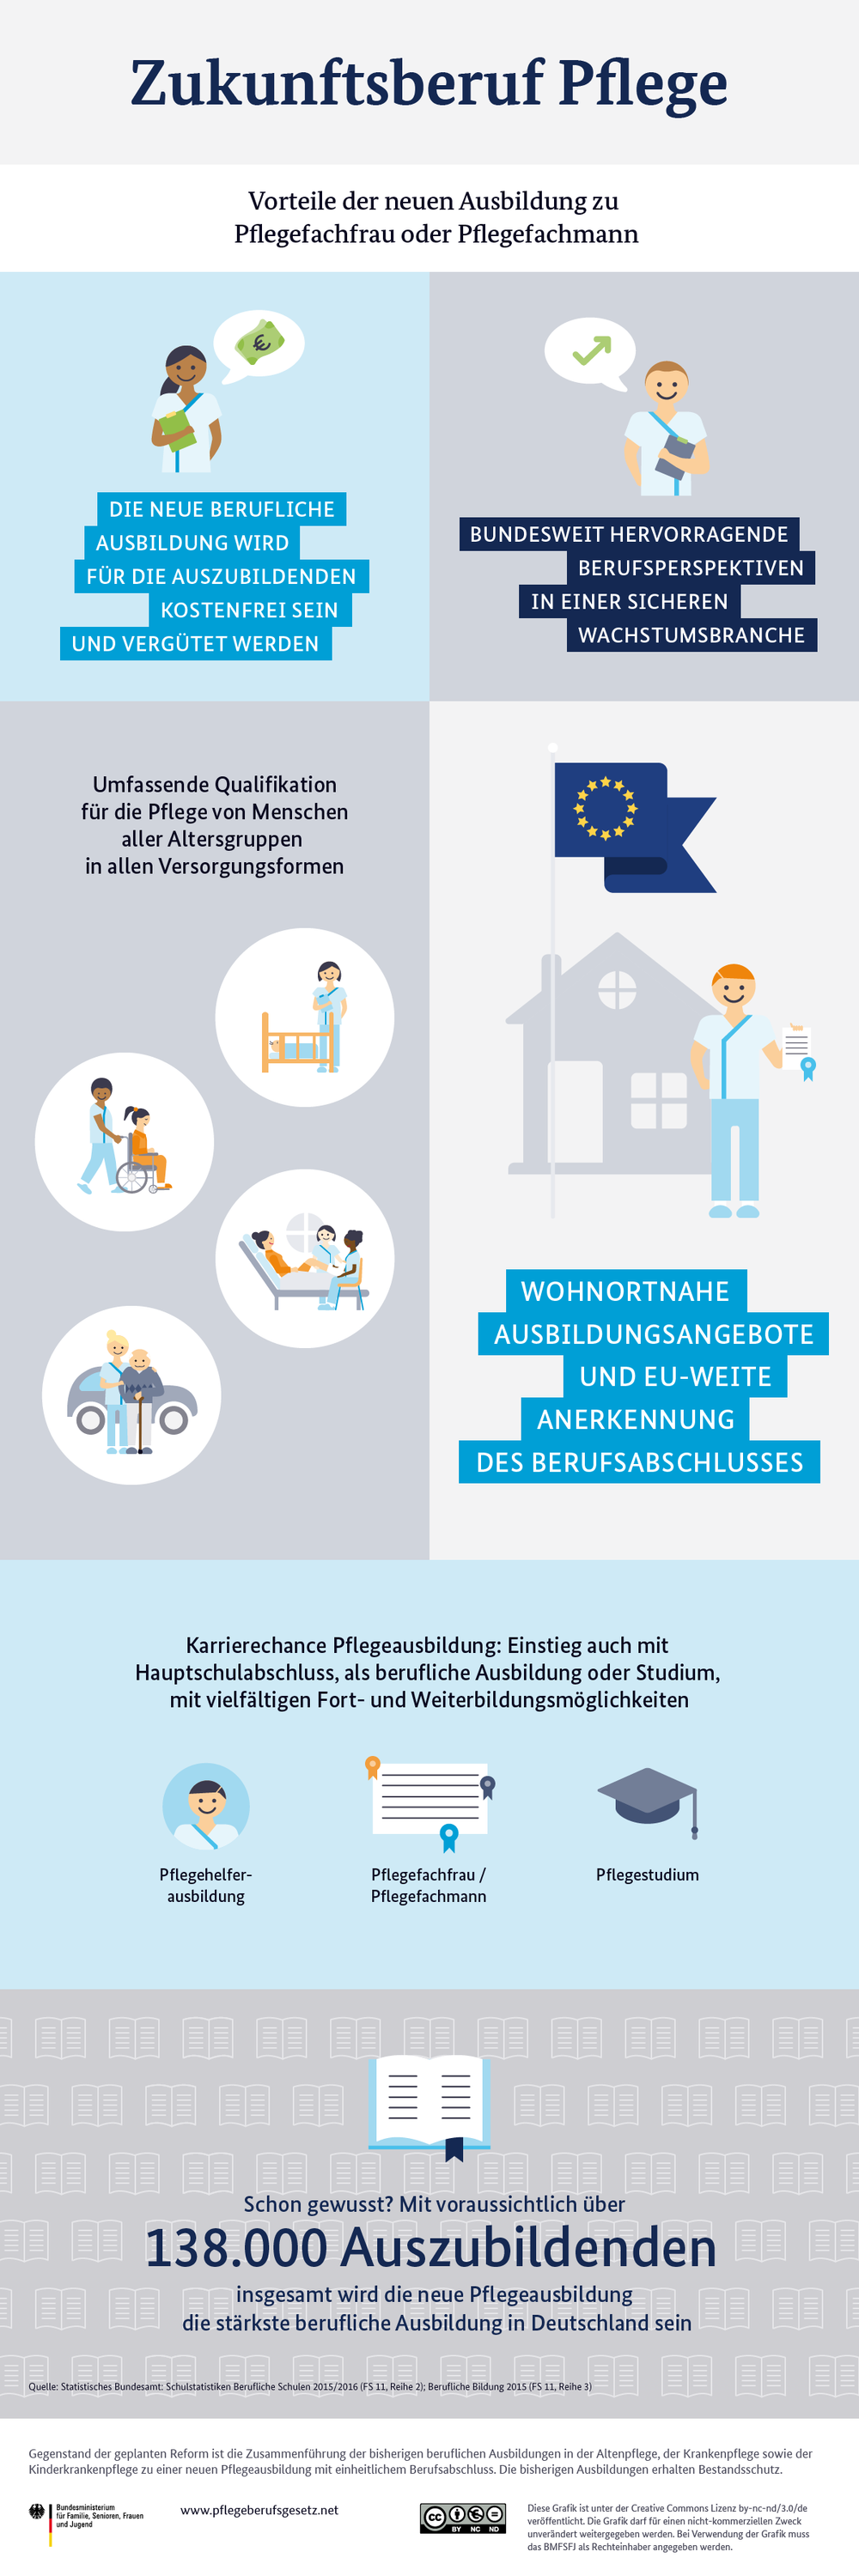 © ]init[ AG – Illustrated and designed for the German Ministry of Family Affairs, Senior Citizens, Women and Youth (BMFSFJ) while working at ]init[ AG.